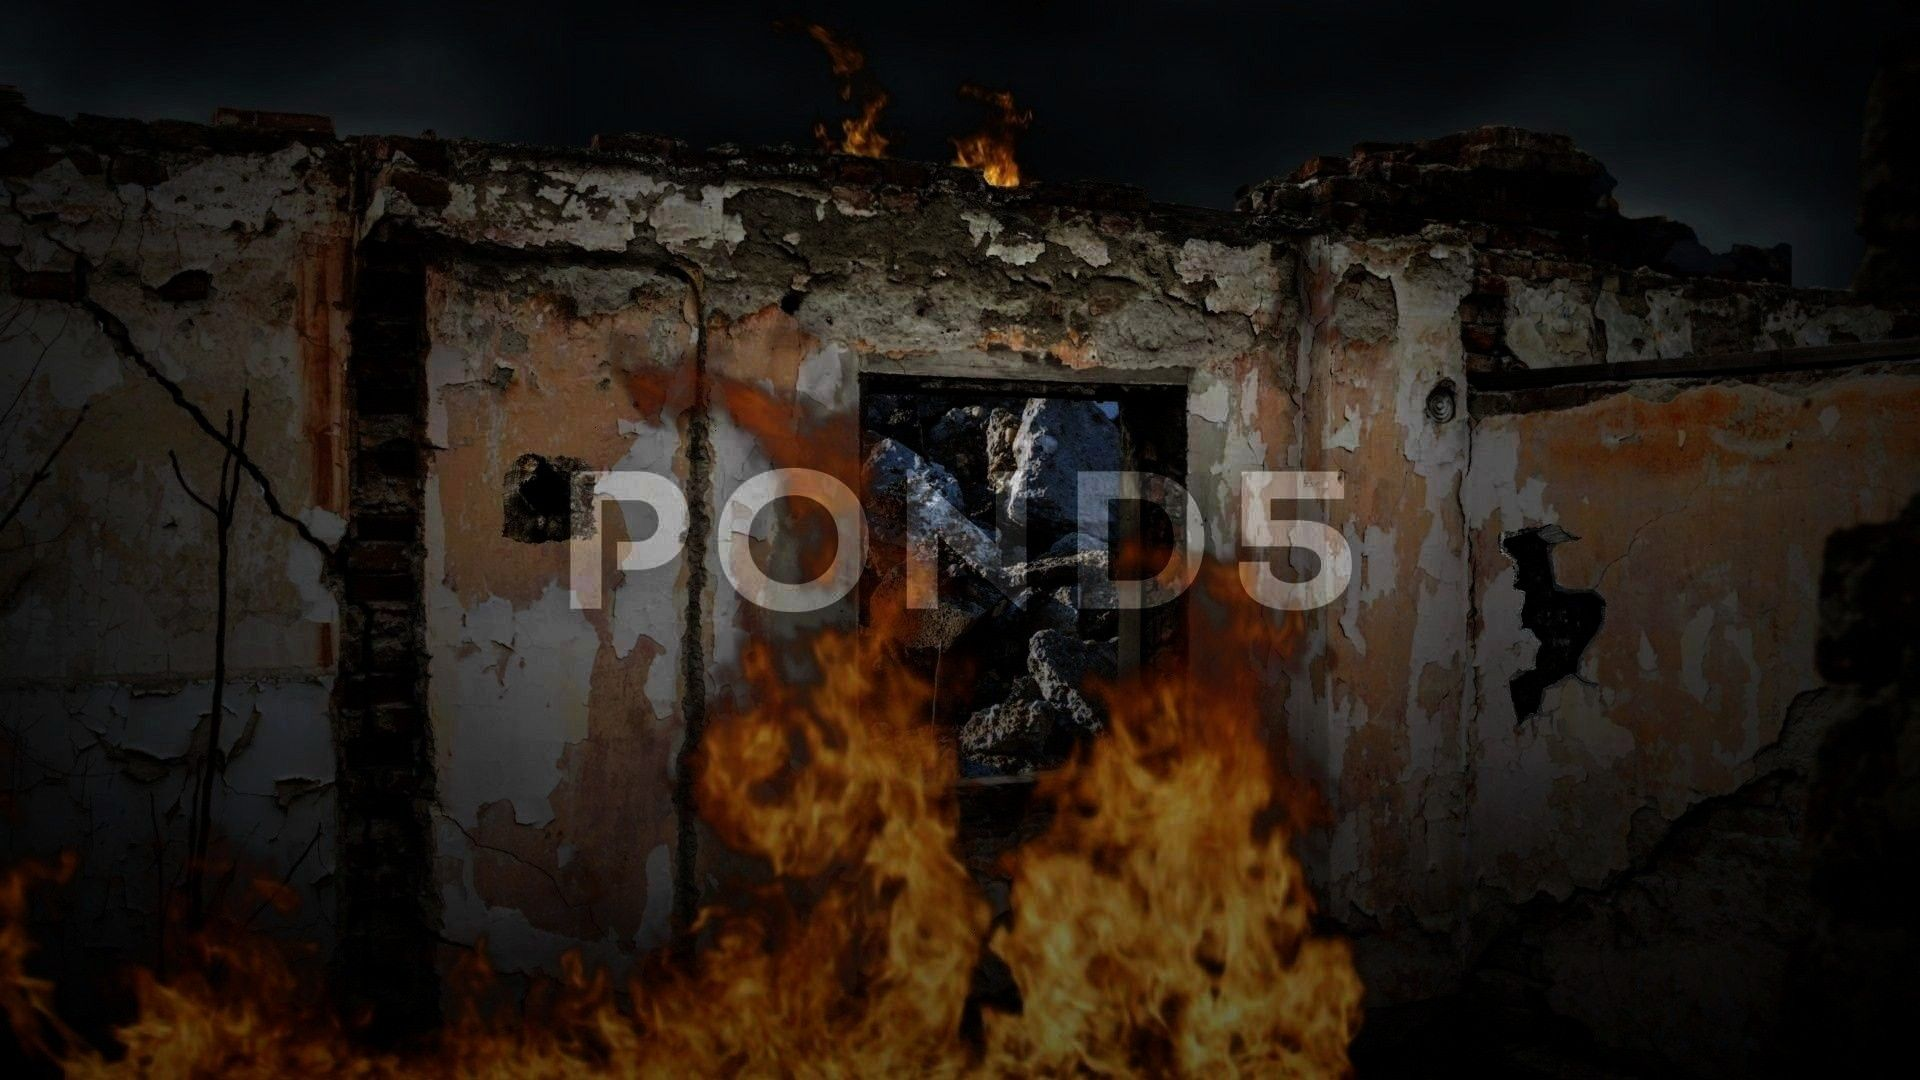 fire Stock Footage debrisbuildingBombedFootageBombed out building debris with fire Stock Footage debrisbuildingBombedFootage Pont Rouge camp for the homeless in Port Au P...